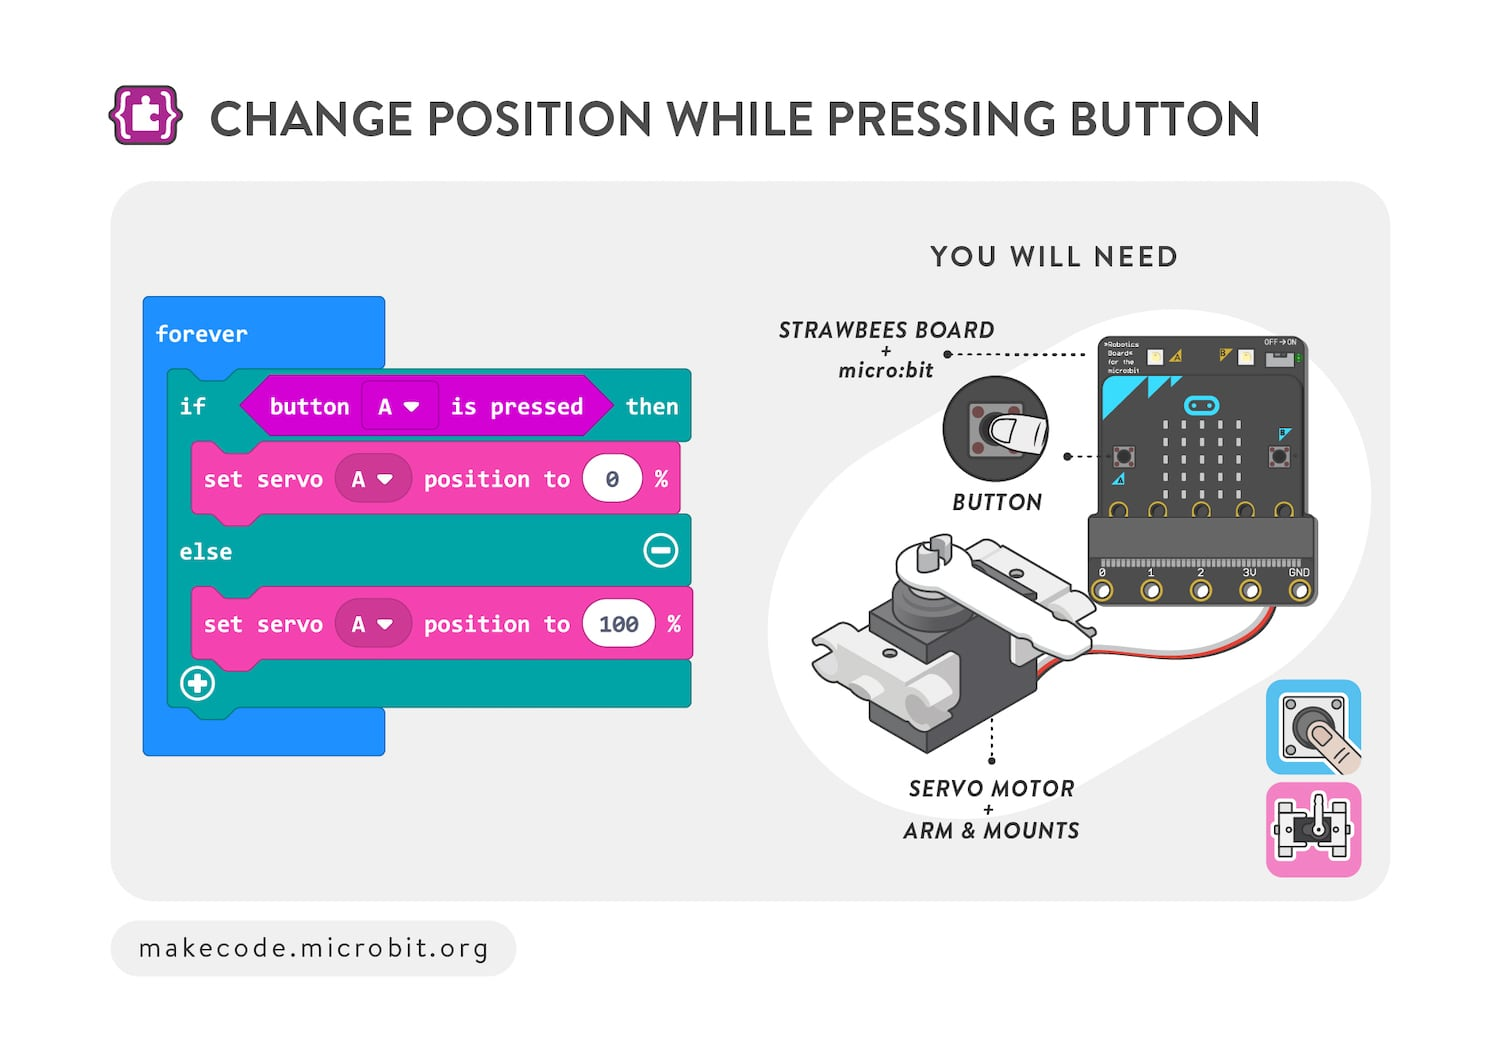 Change position while pressing button